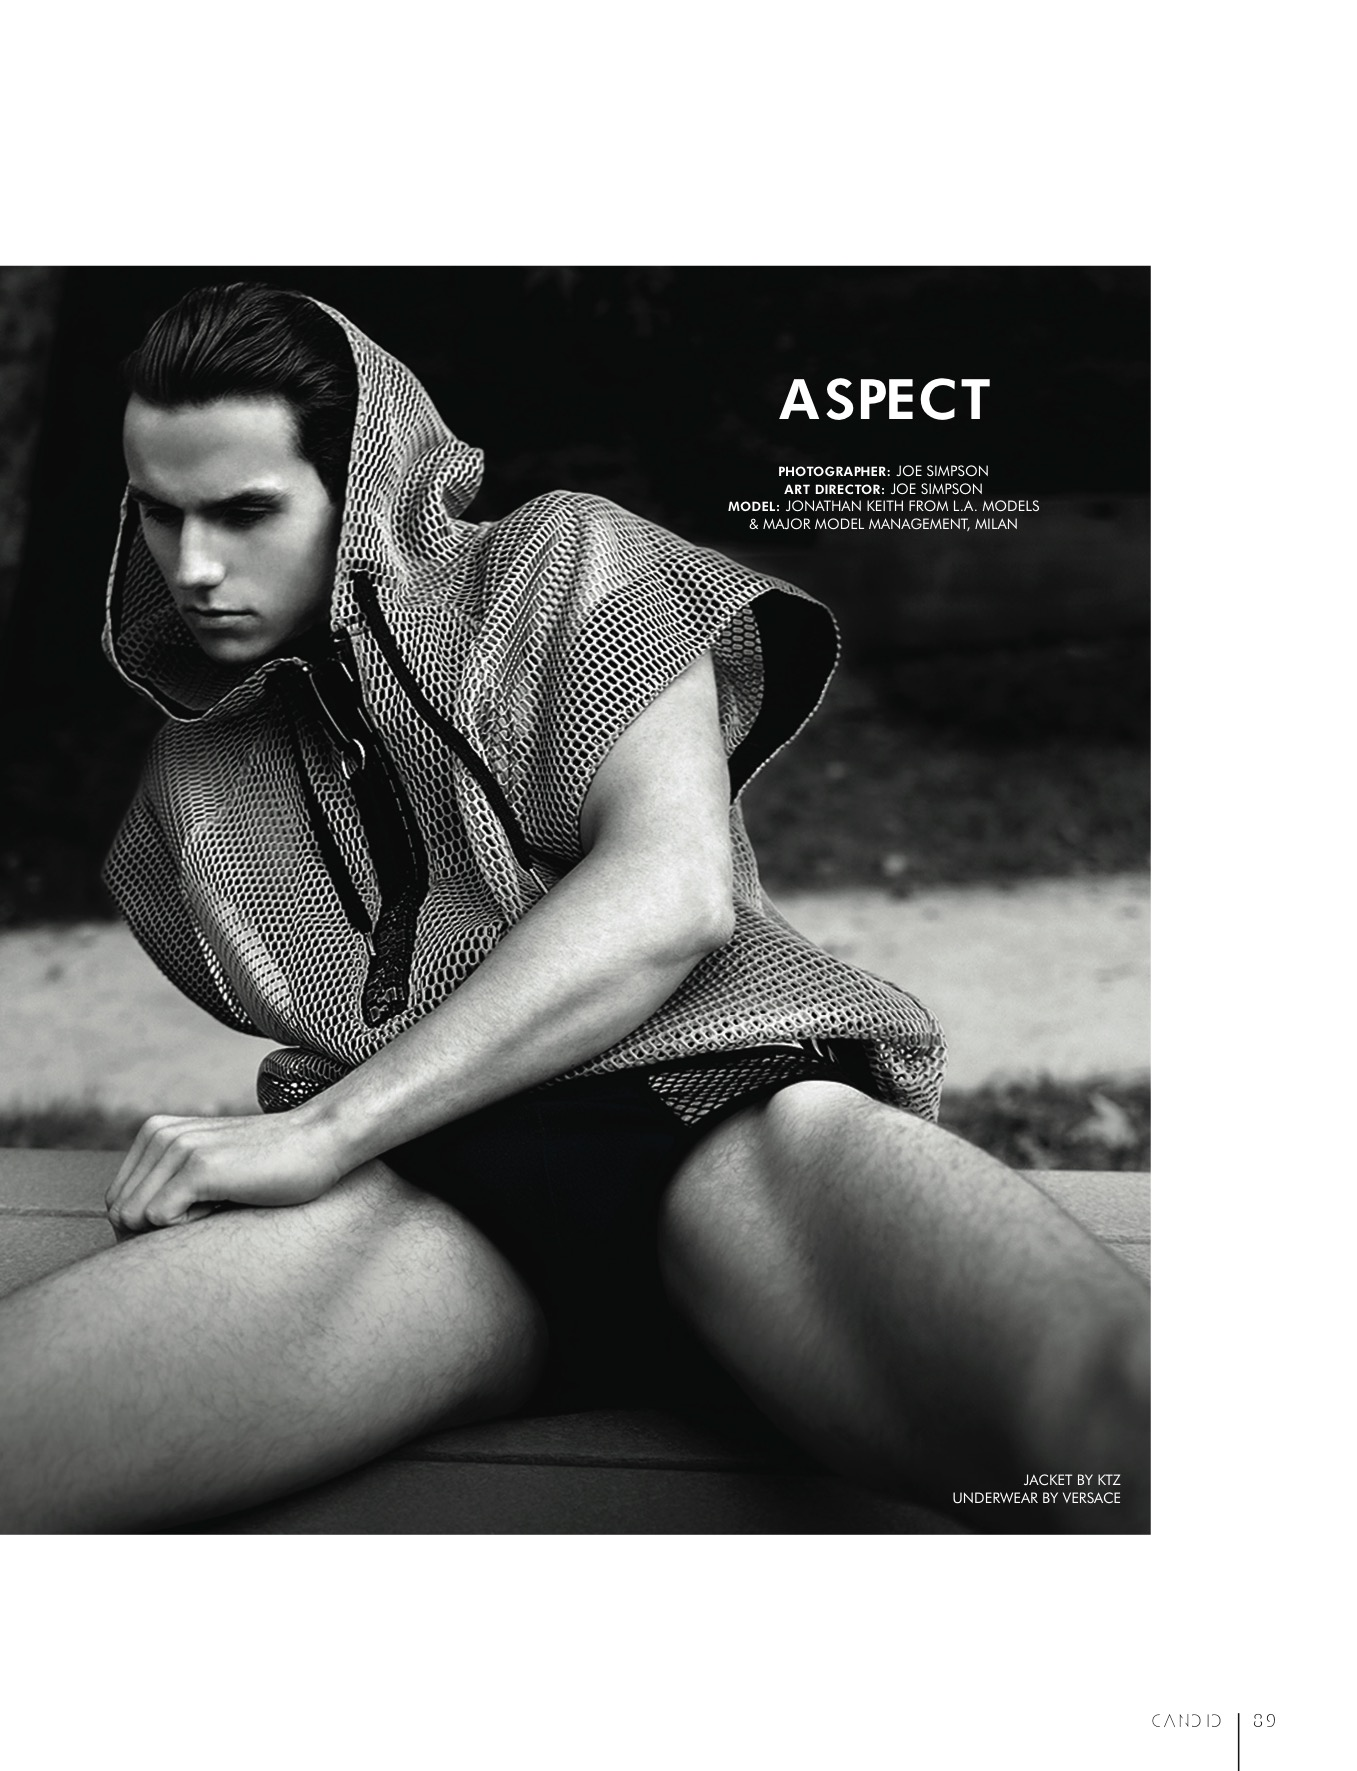 Candid_Issue 11_Pg89